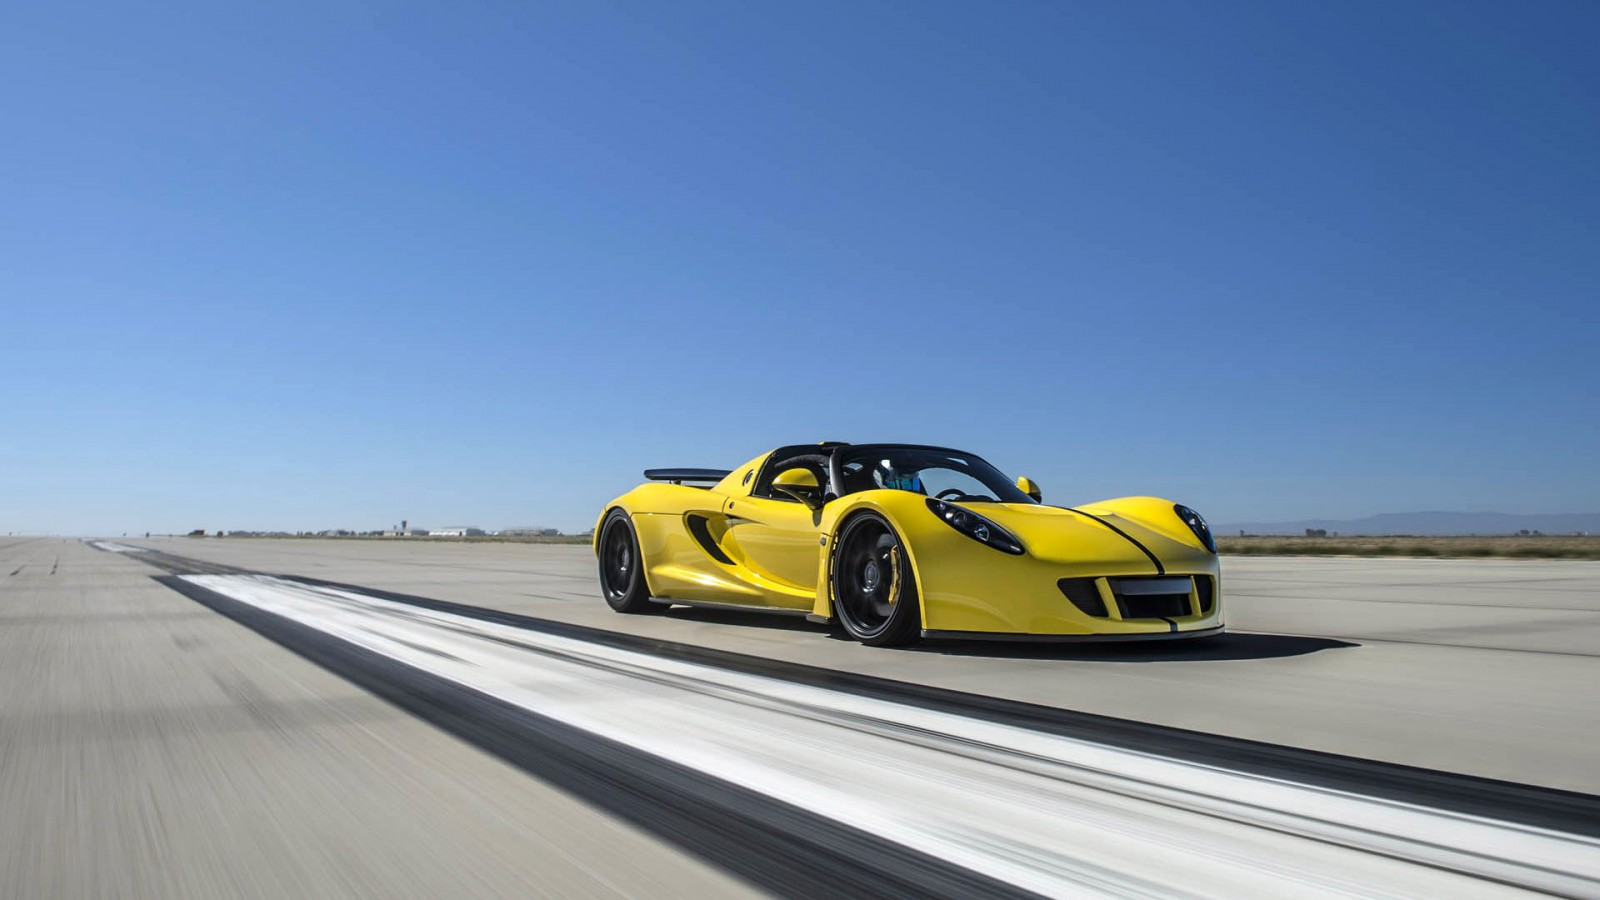 Hennessy Wallpaper Iphone 2016 Hennessey Venom Gt Spyder Wallpapers Hd Wallpapers